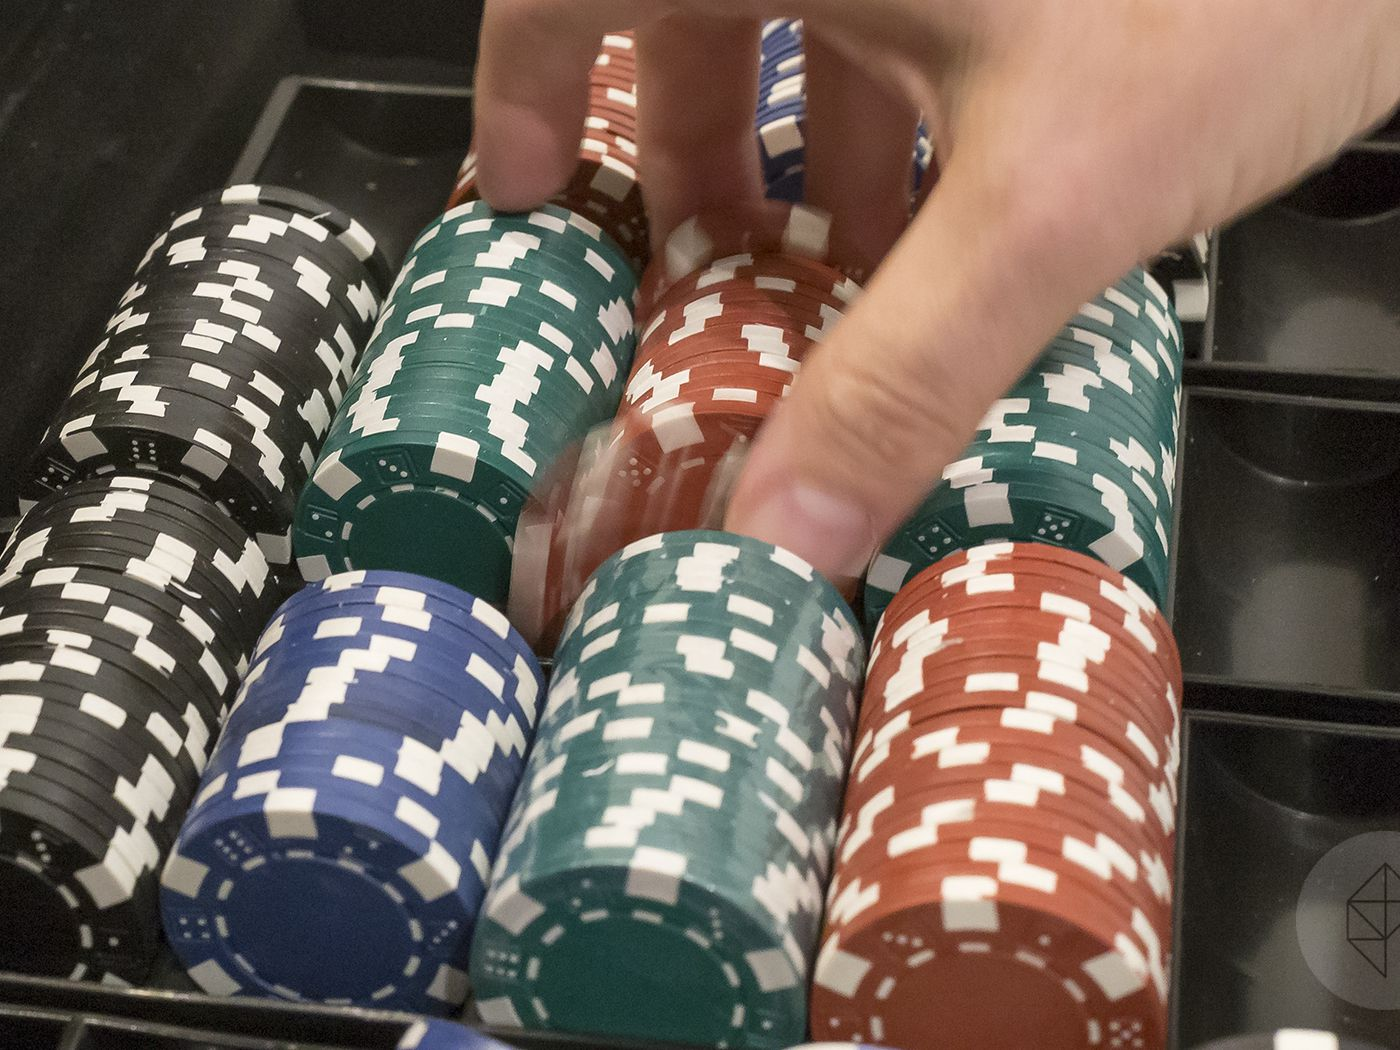 Tricks to Win Playing Online Poker